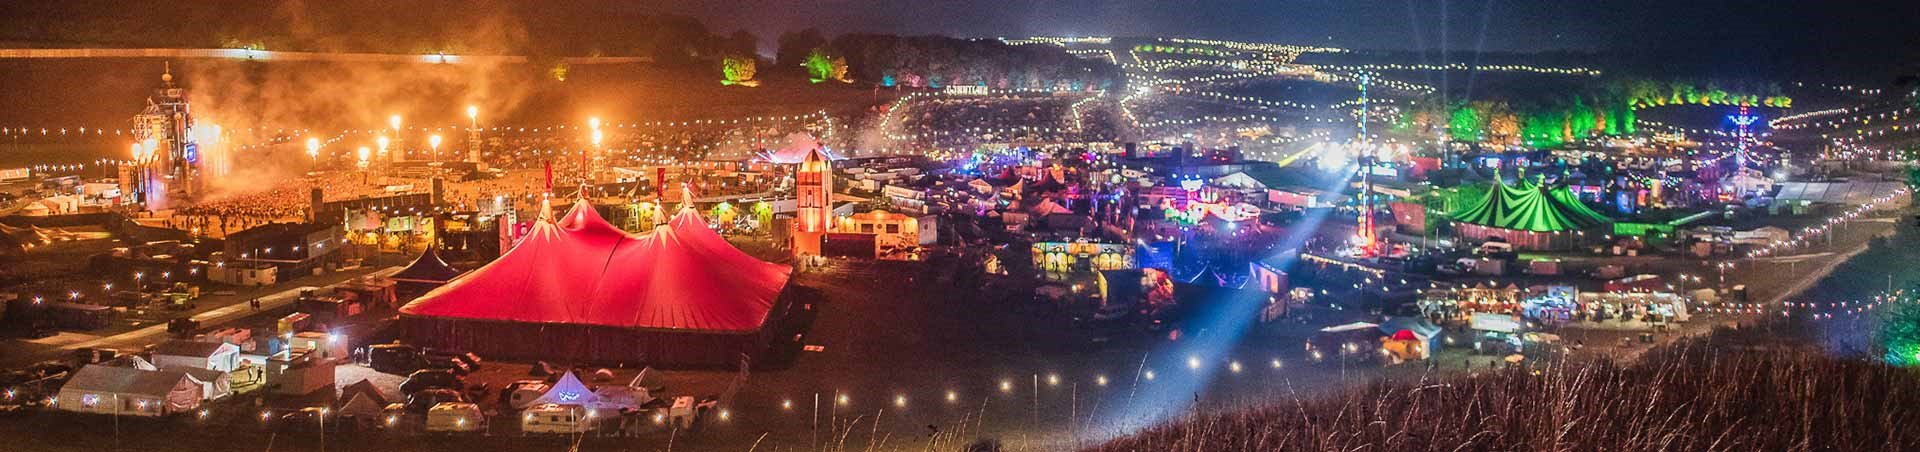 Travel to Boomtown Fair by coach with easy, convenient return services from National Express